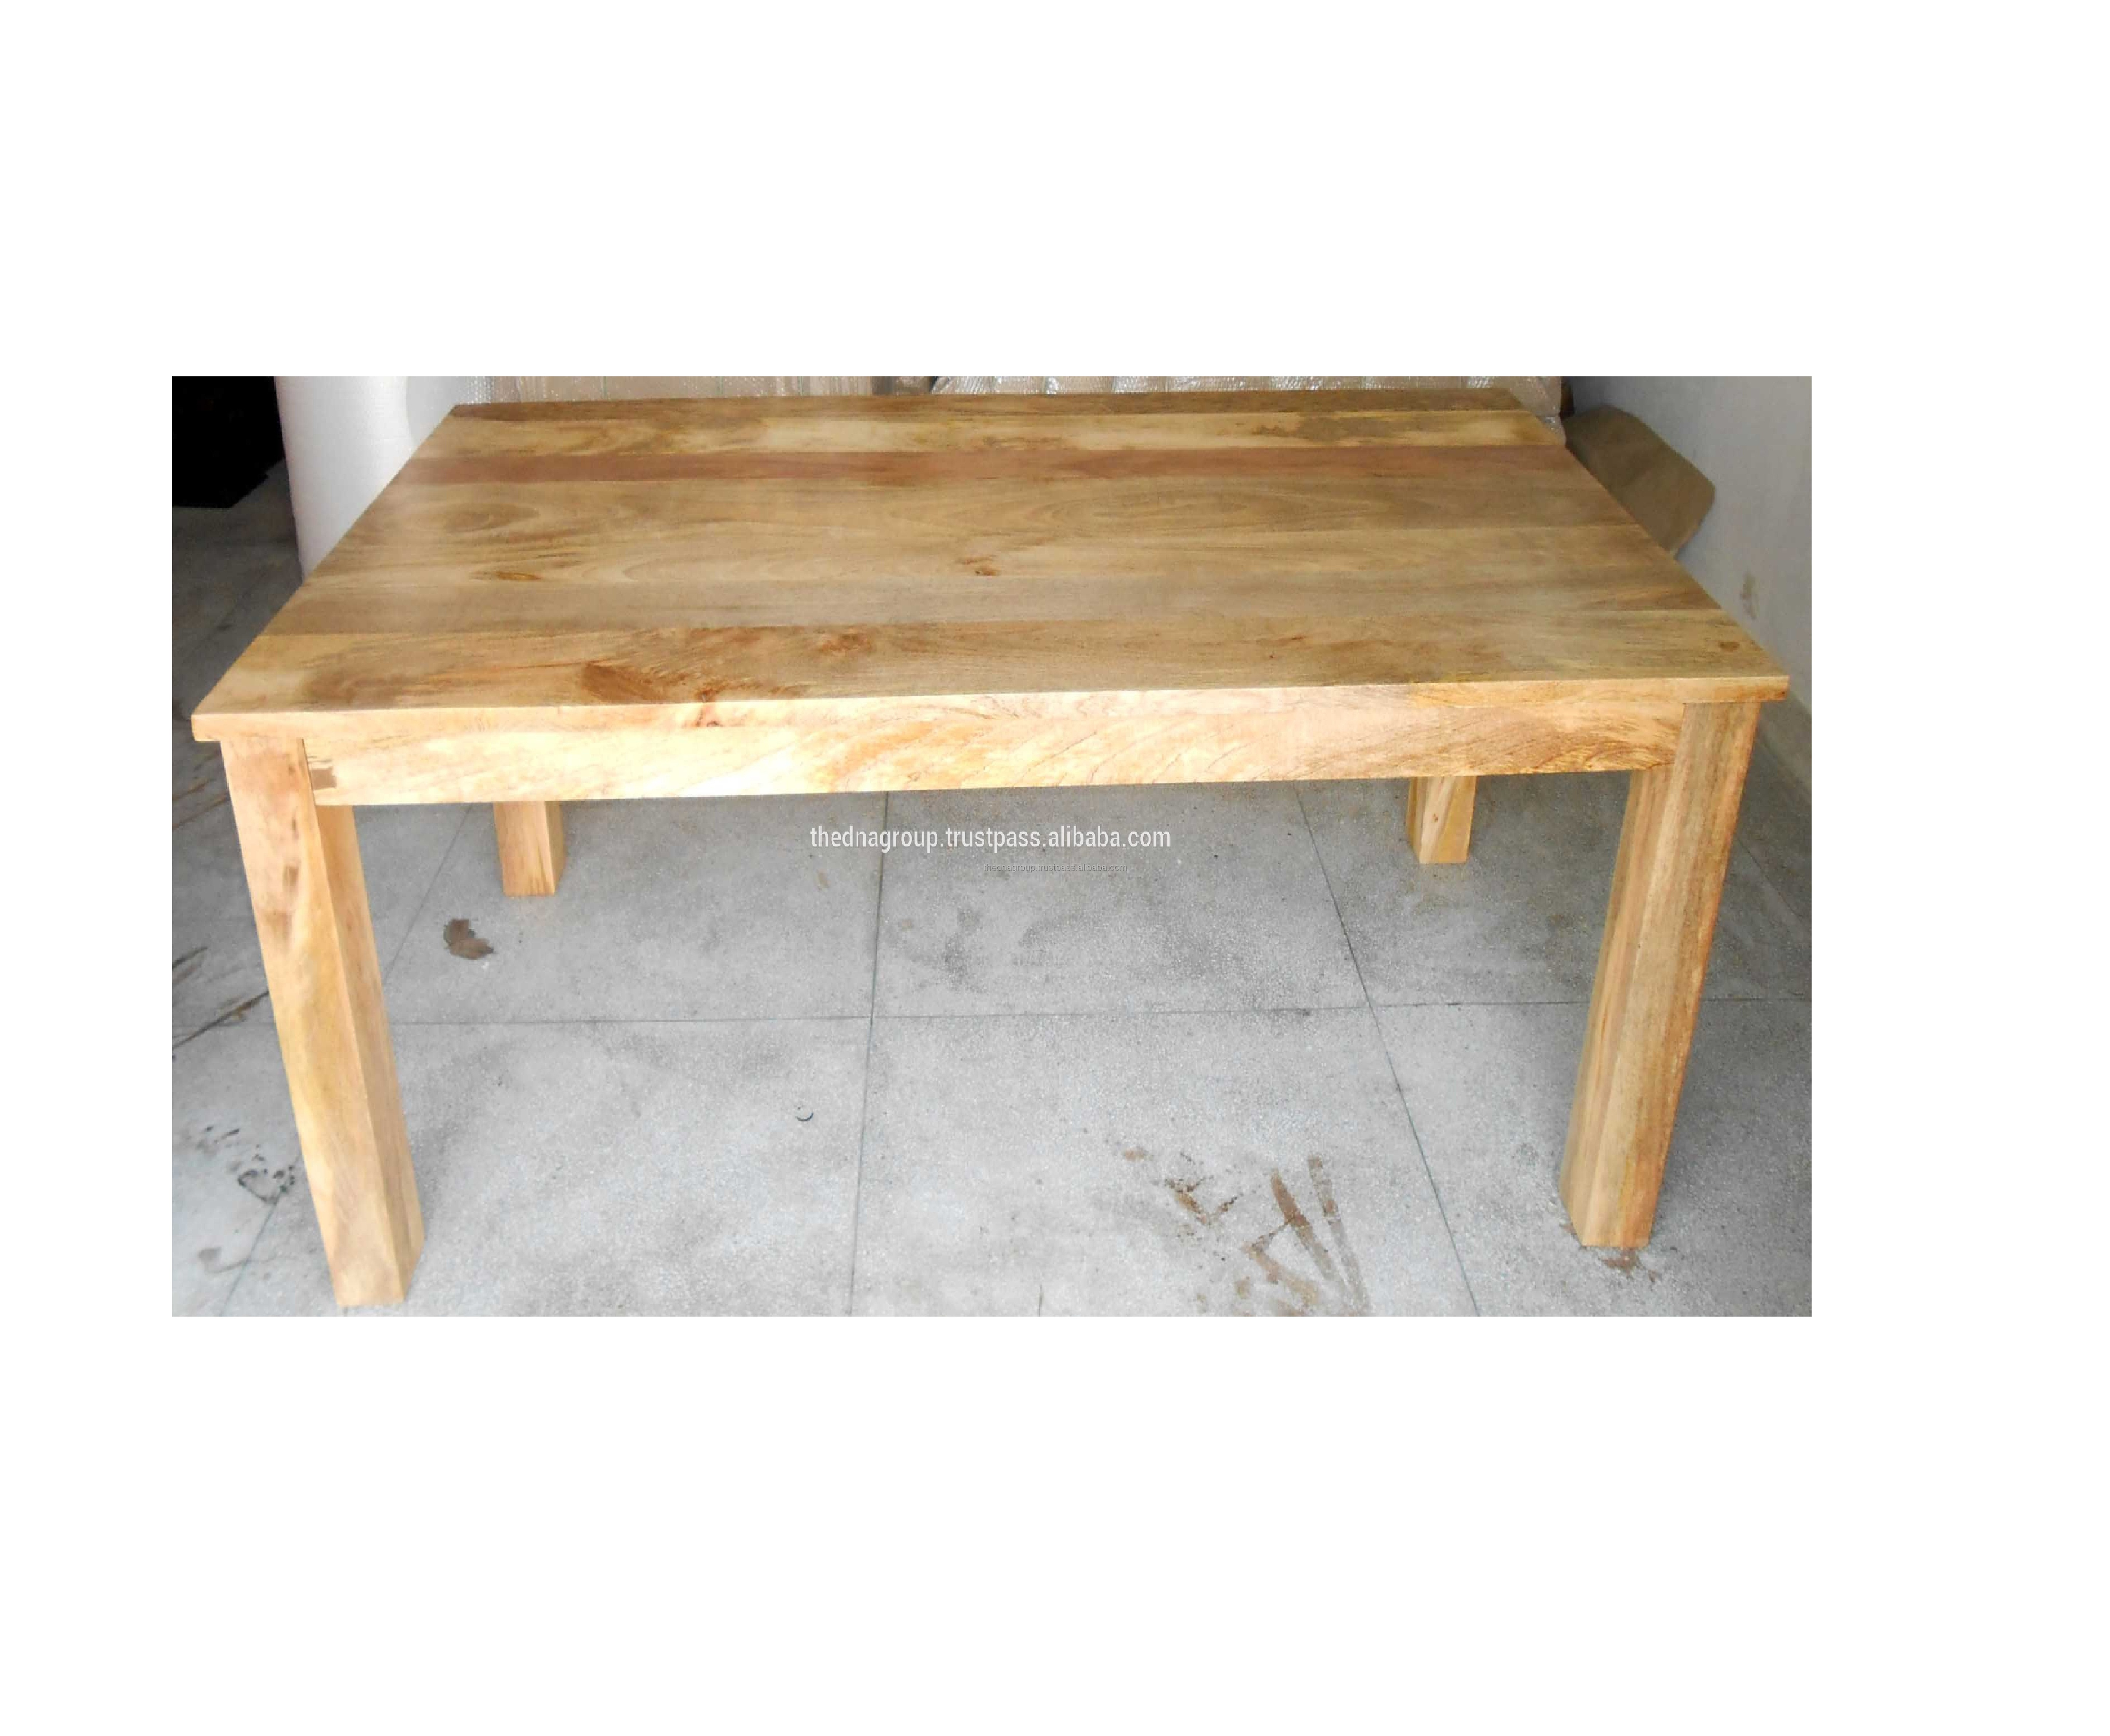 Mango Wood Dinning Table Rustic Finish With Solid Legs Buy Mango Wood Dinning Table Rustic Finish With Solid Legs Vintage Dining Table Rustic Finish Antique Dining Tables Product On Alibaba Com